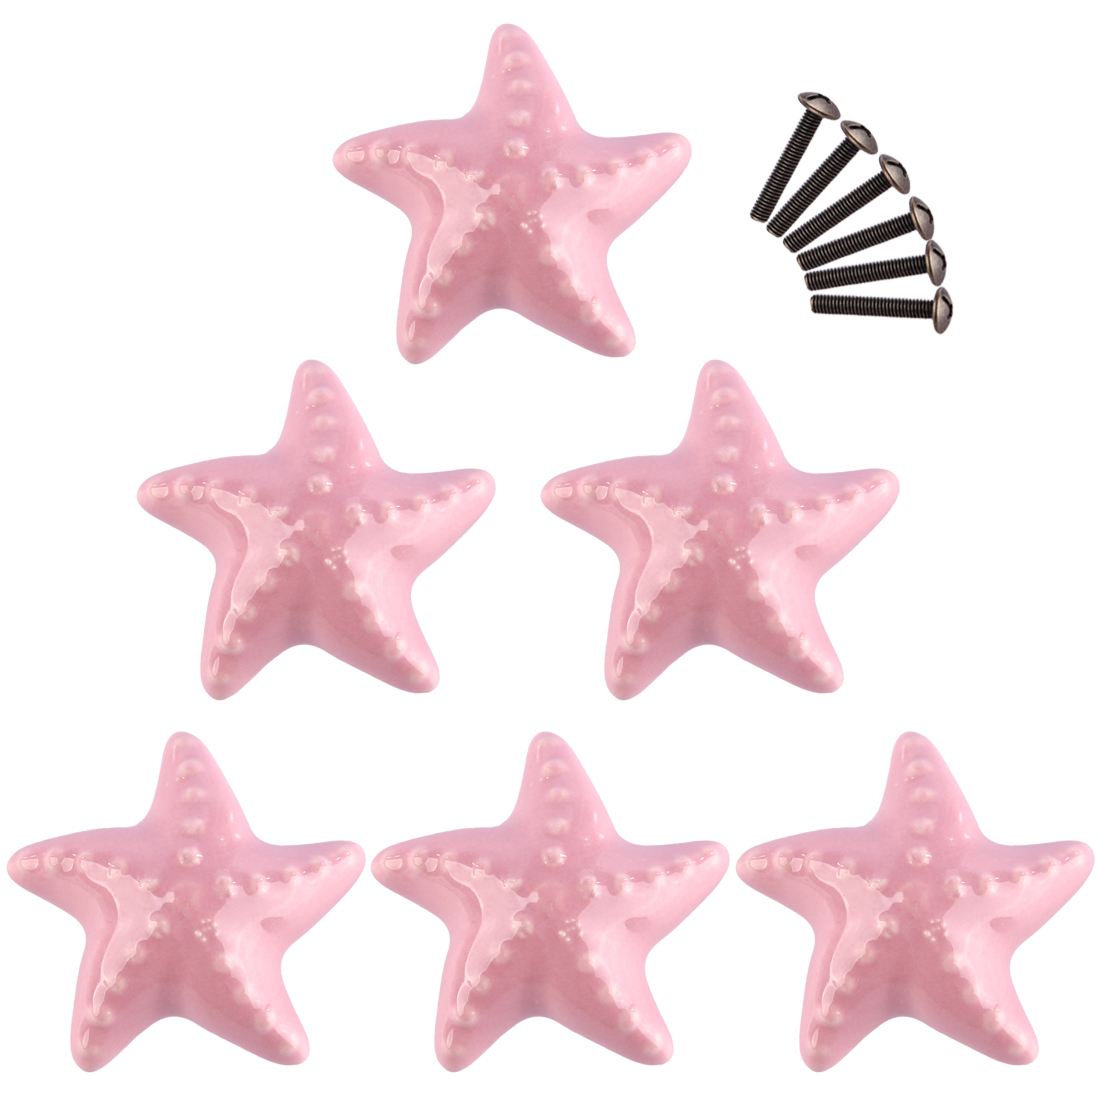 6 PCS Set Ceramic Cute Starfish Shaped Furniture Handles Creative Door Cabinet knobs for Children Cabinet Drawer Wardrobe Door